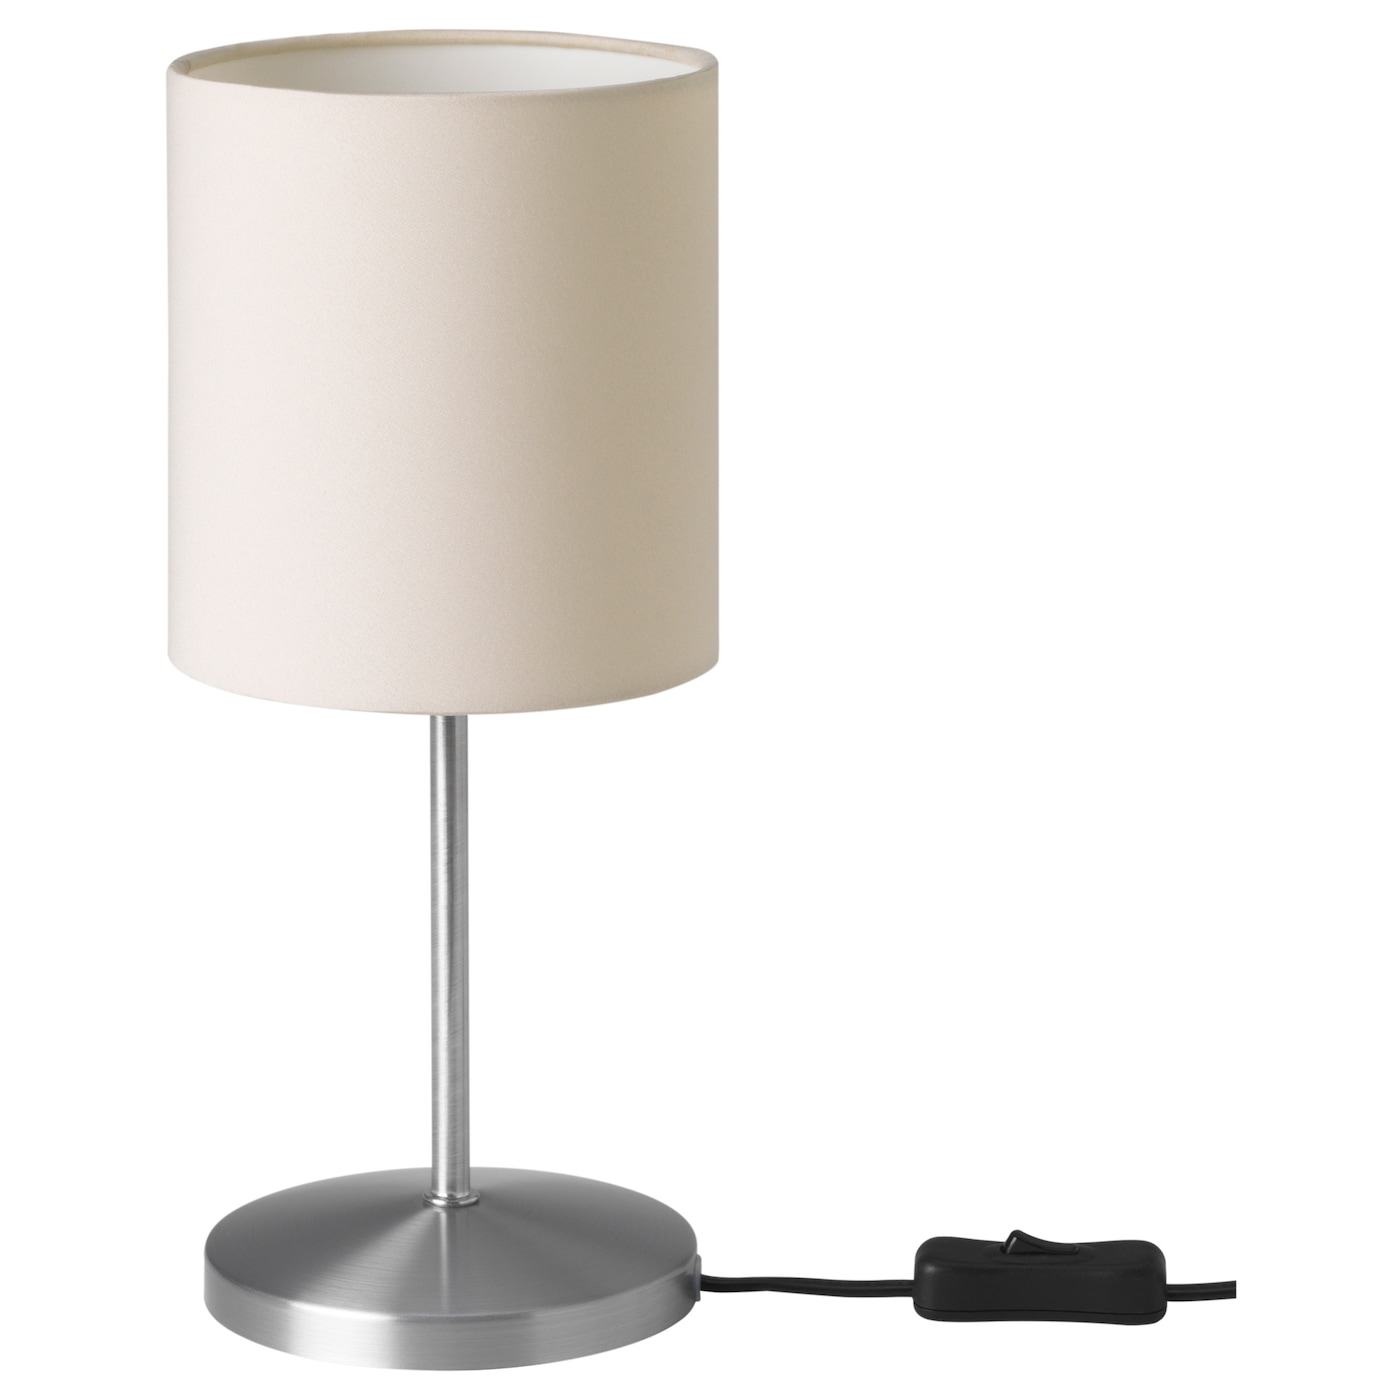 INGARED - Table lamp with LED bulb, beige